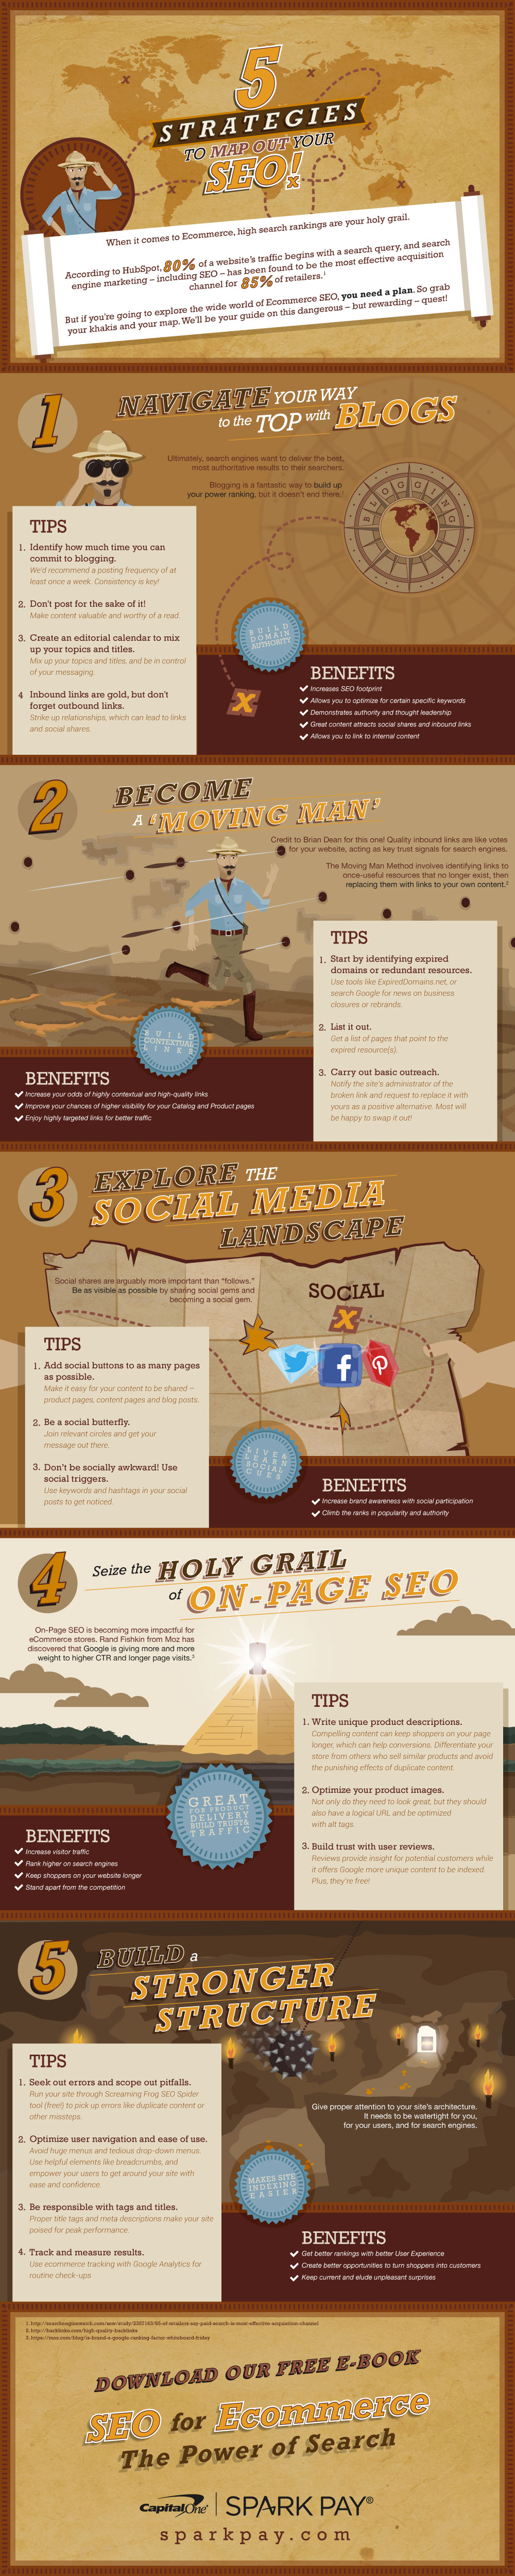 5-SEO-Strategies-Infographic